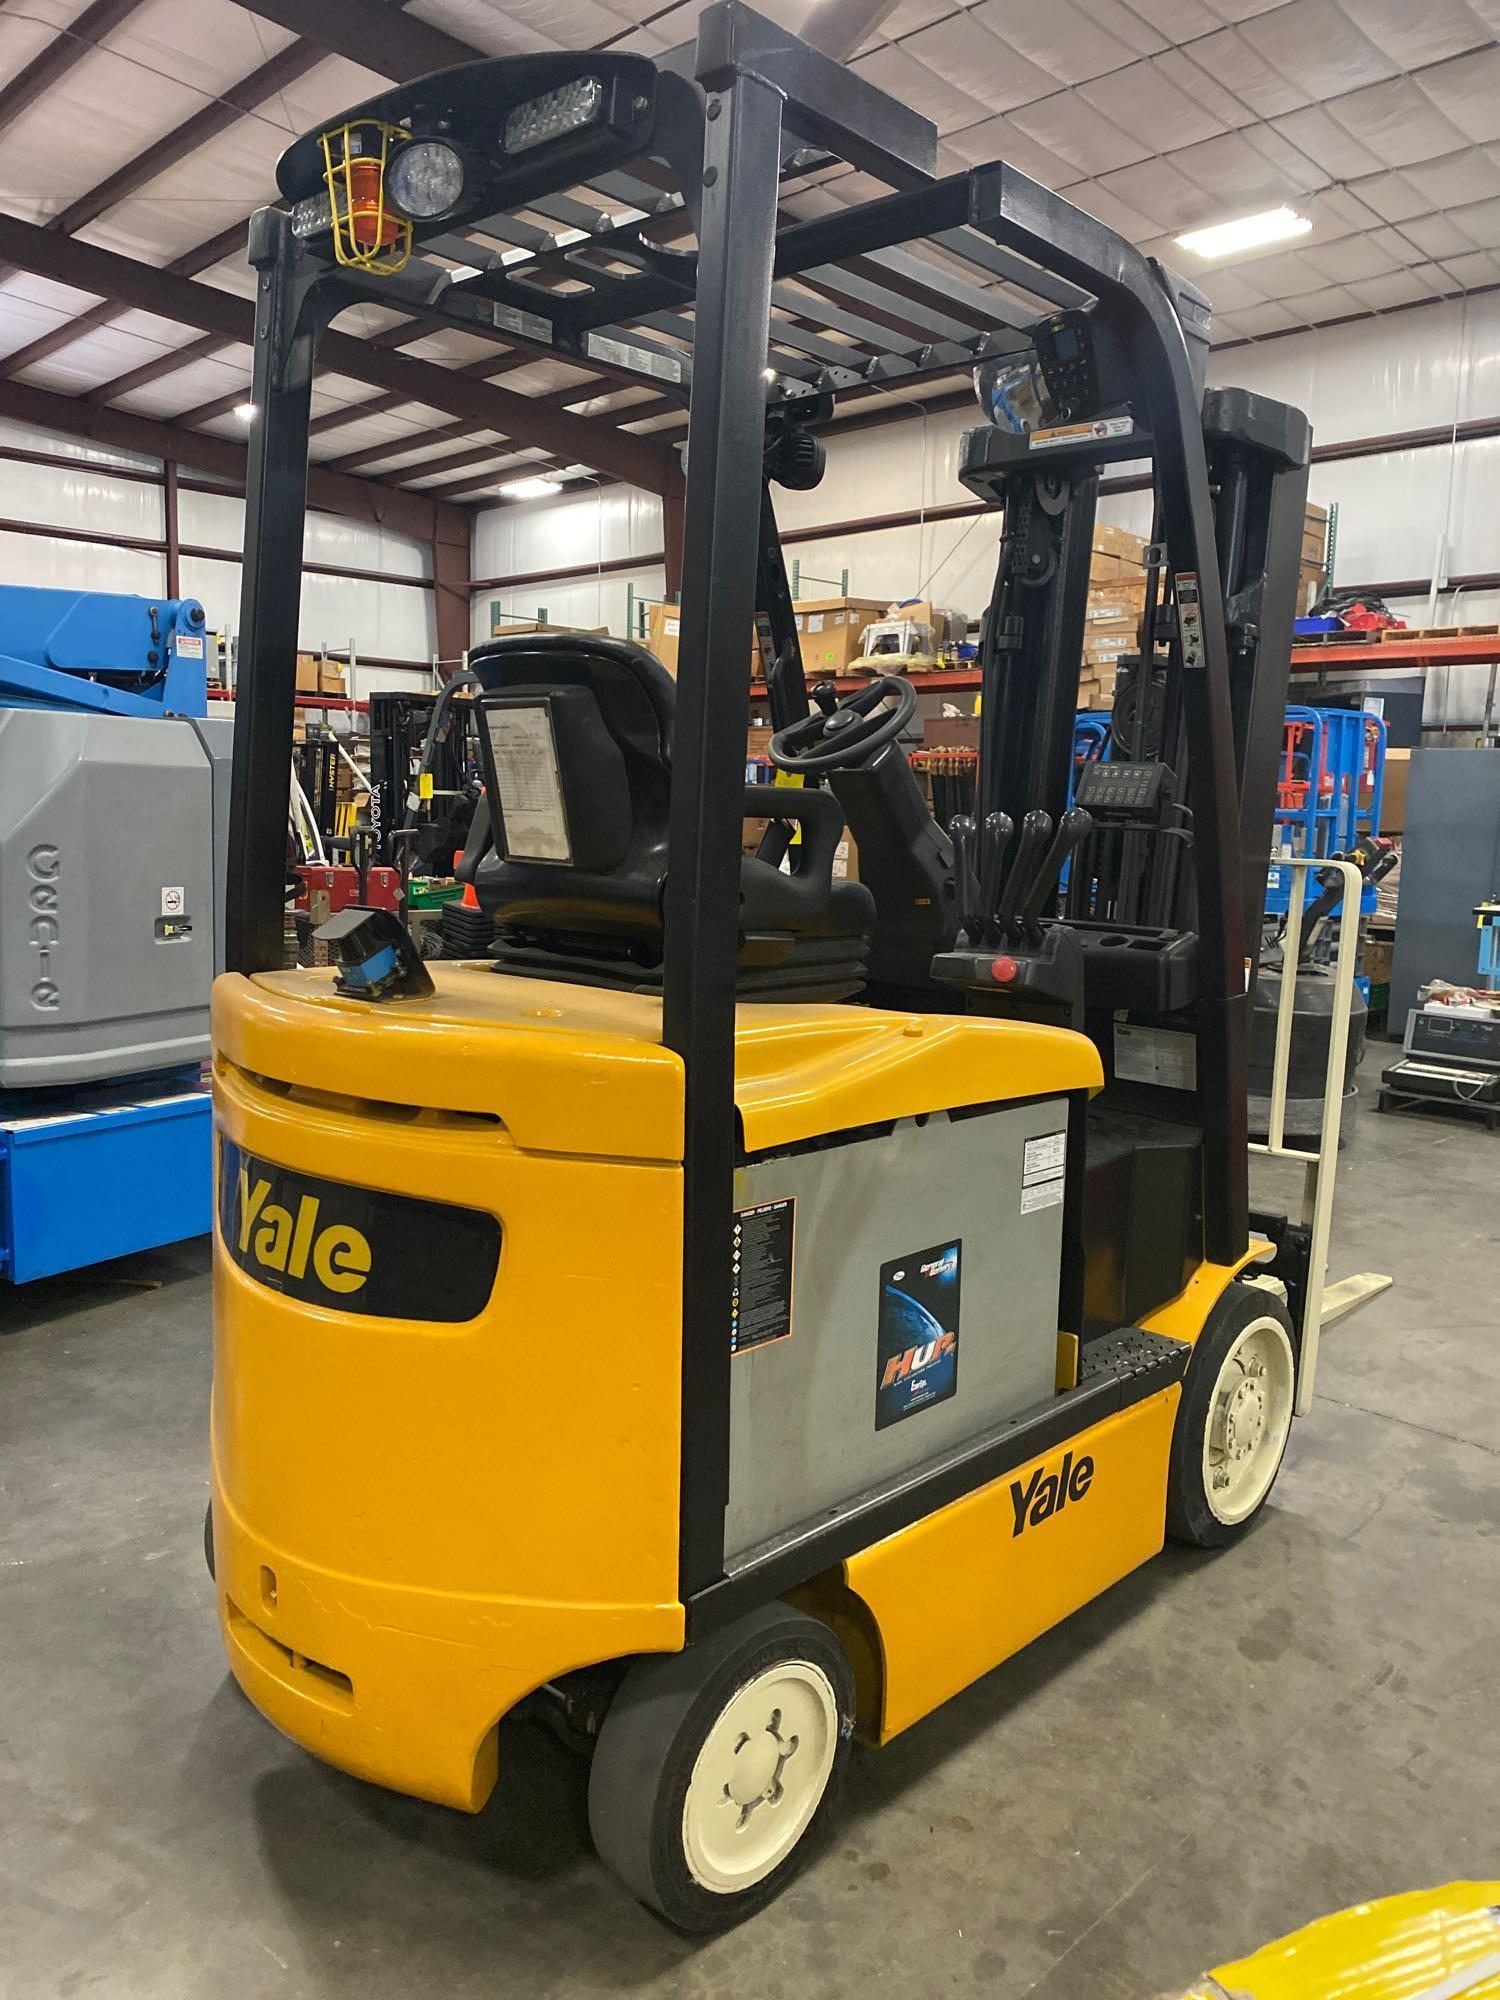 """YALE ELECTRIC FORKLIFT MODEL ERCO50VGN36TE088, 36V, 200.8"""" HEIGHT CAPACITY, APPROX. 5,000 LB CAPACIT - Image 4 of 9"""